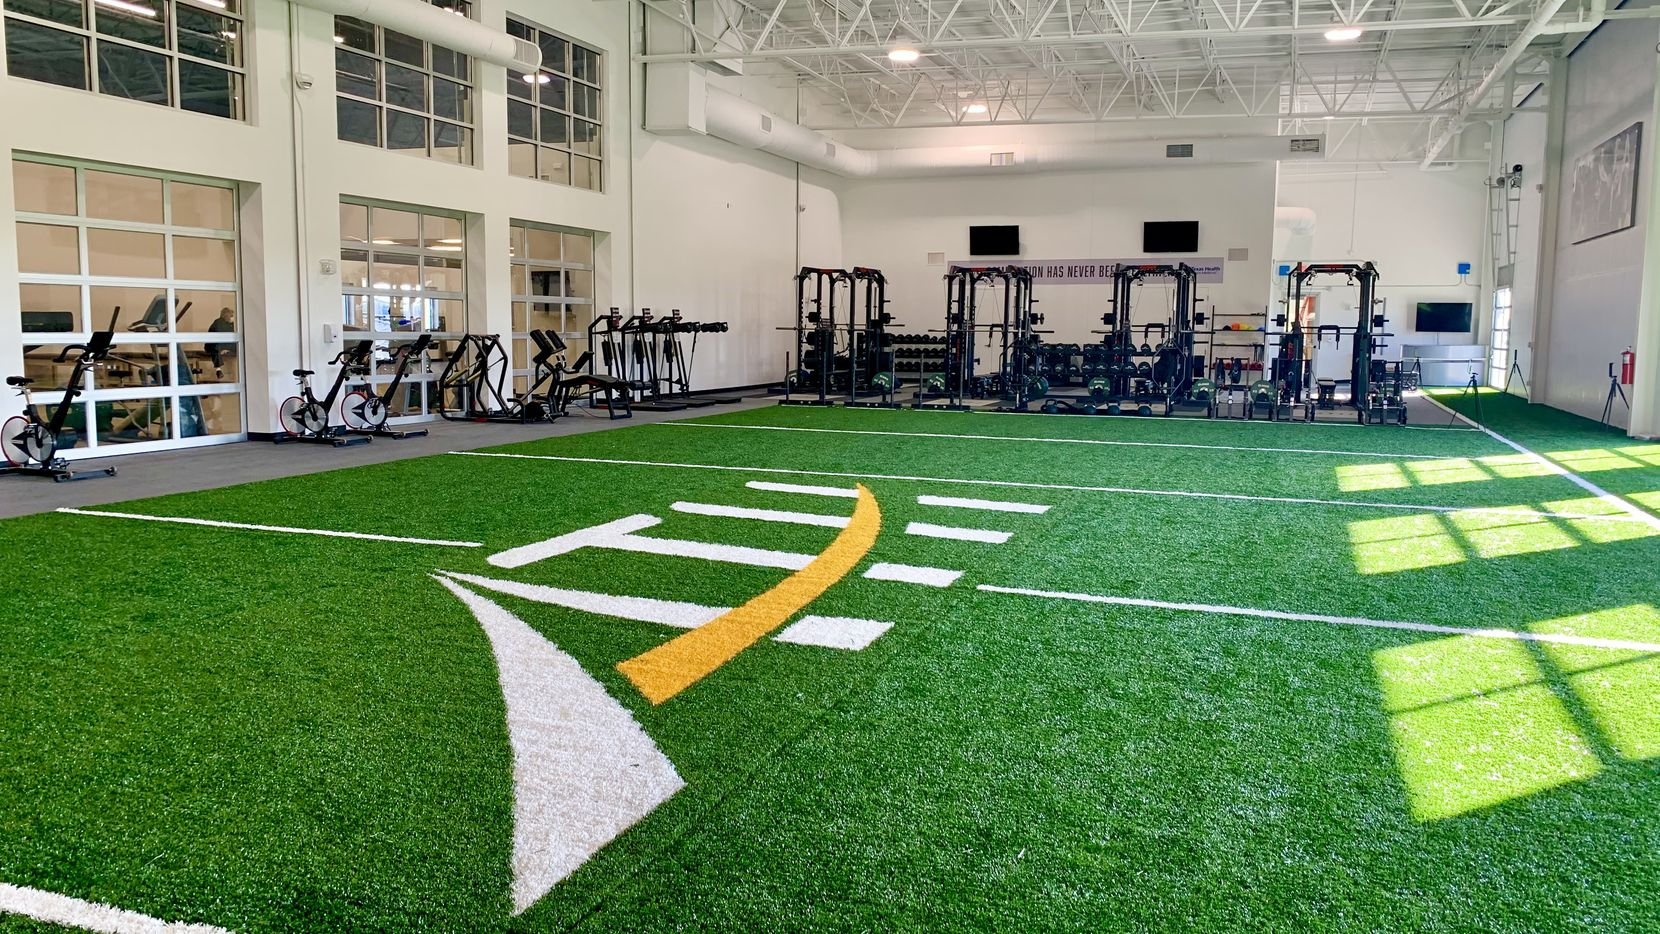 The new sports medicine and performance complex at Texas Health Allen opened on Feb. 10.